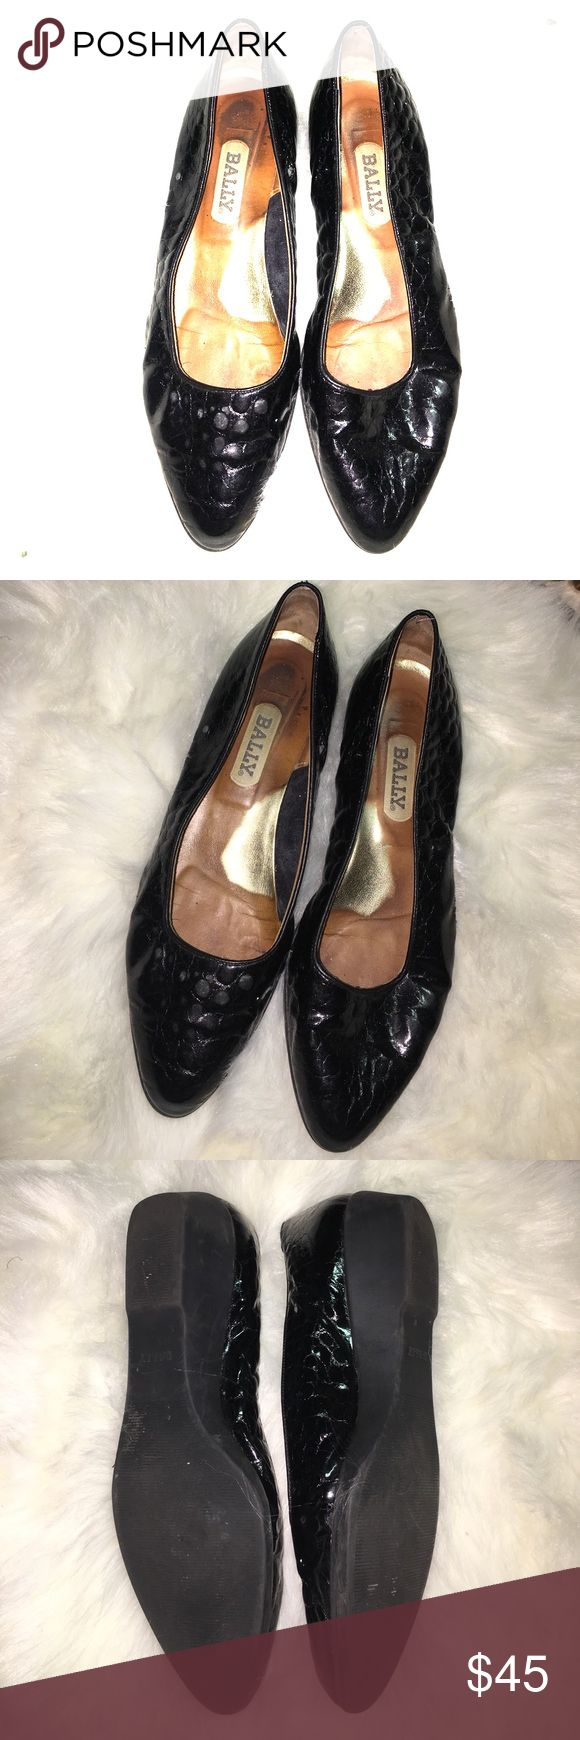 BALLY LOW WEDGE SHOE Black with rubber soles they have approximately a 1 inch wedge Bally Shoes Wedges